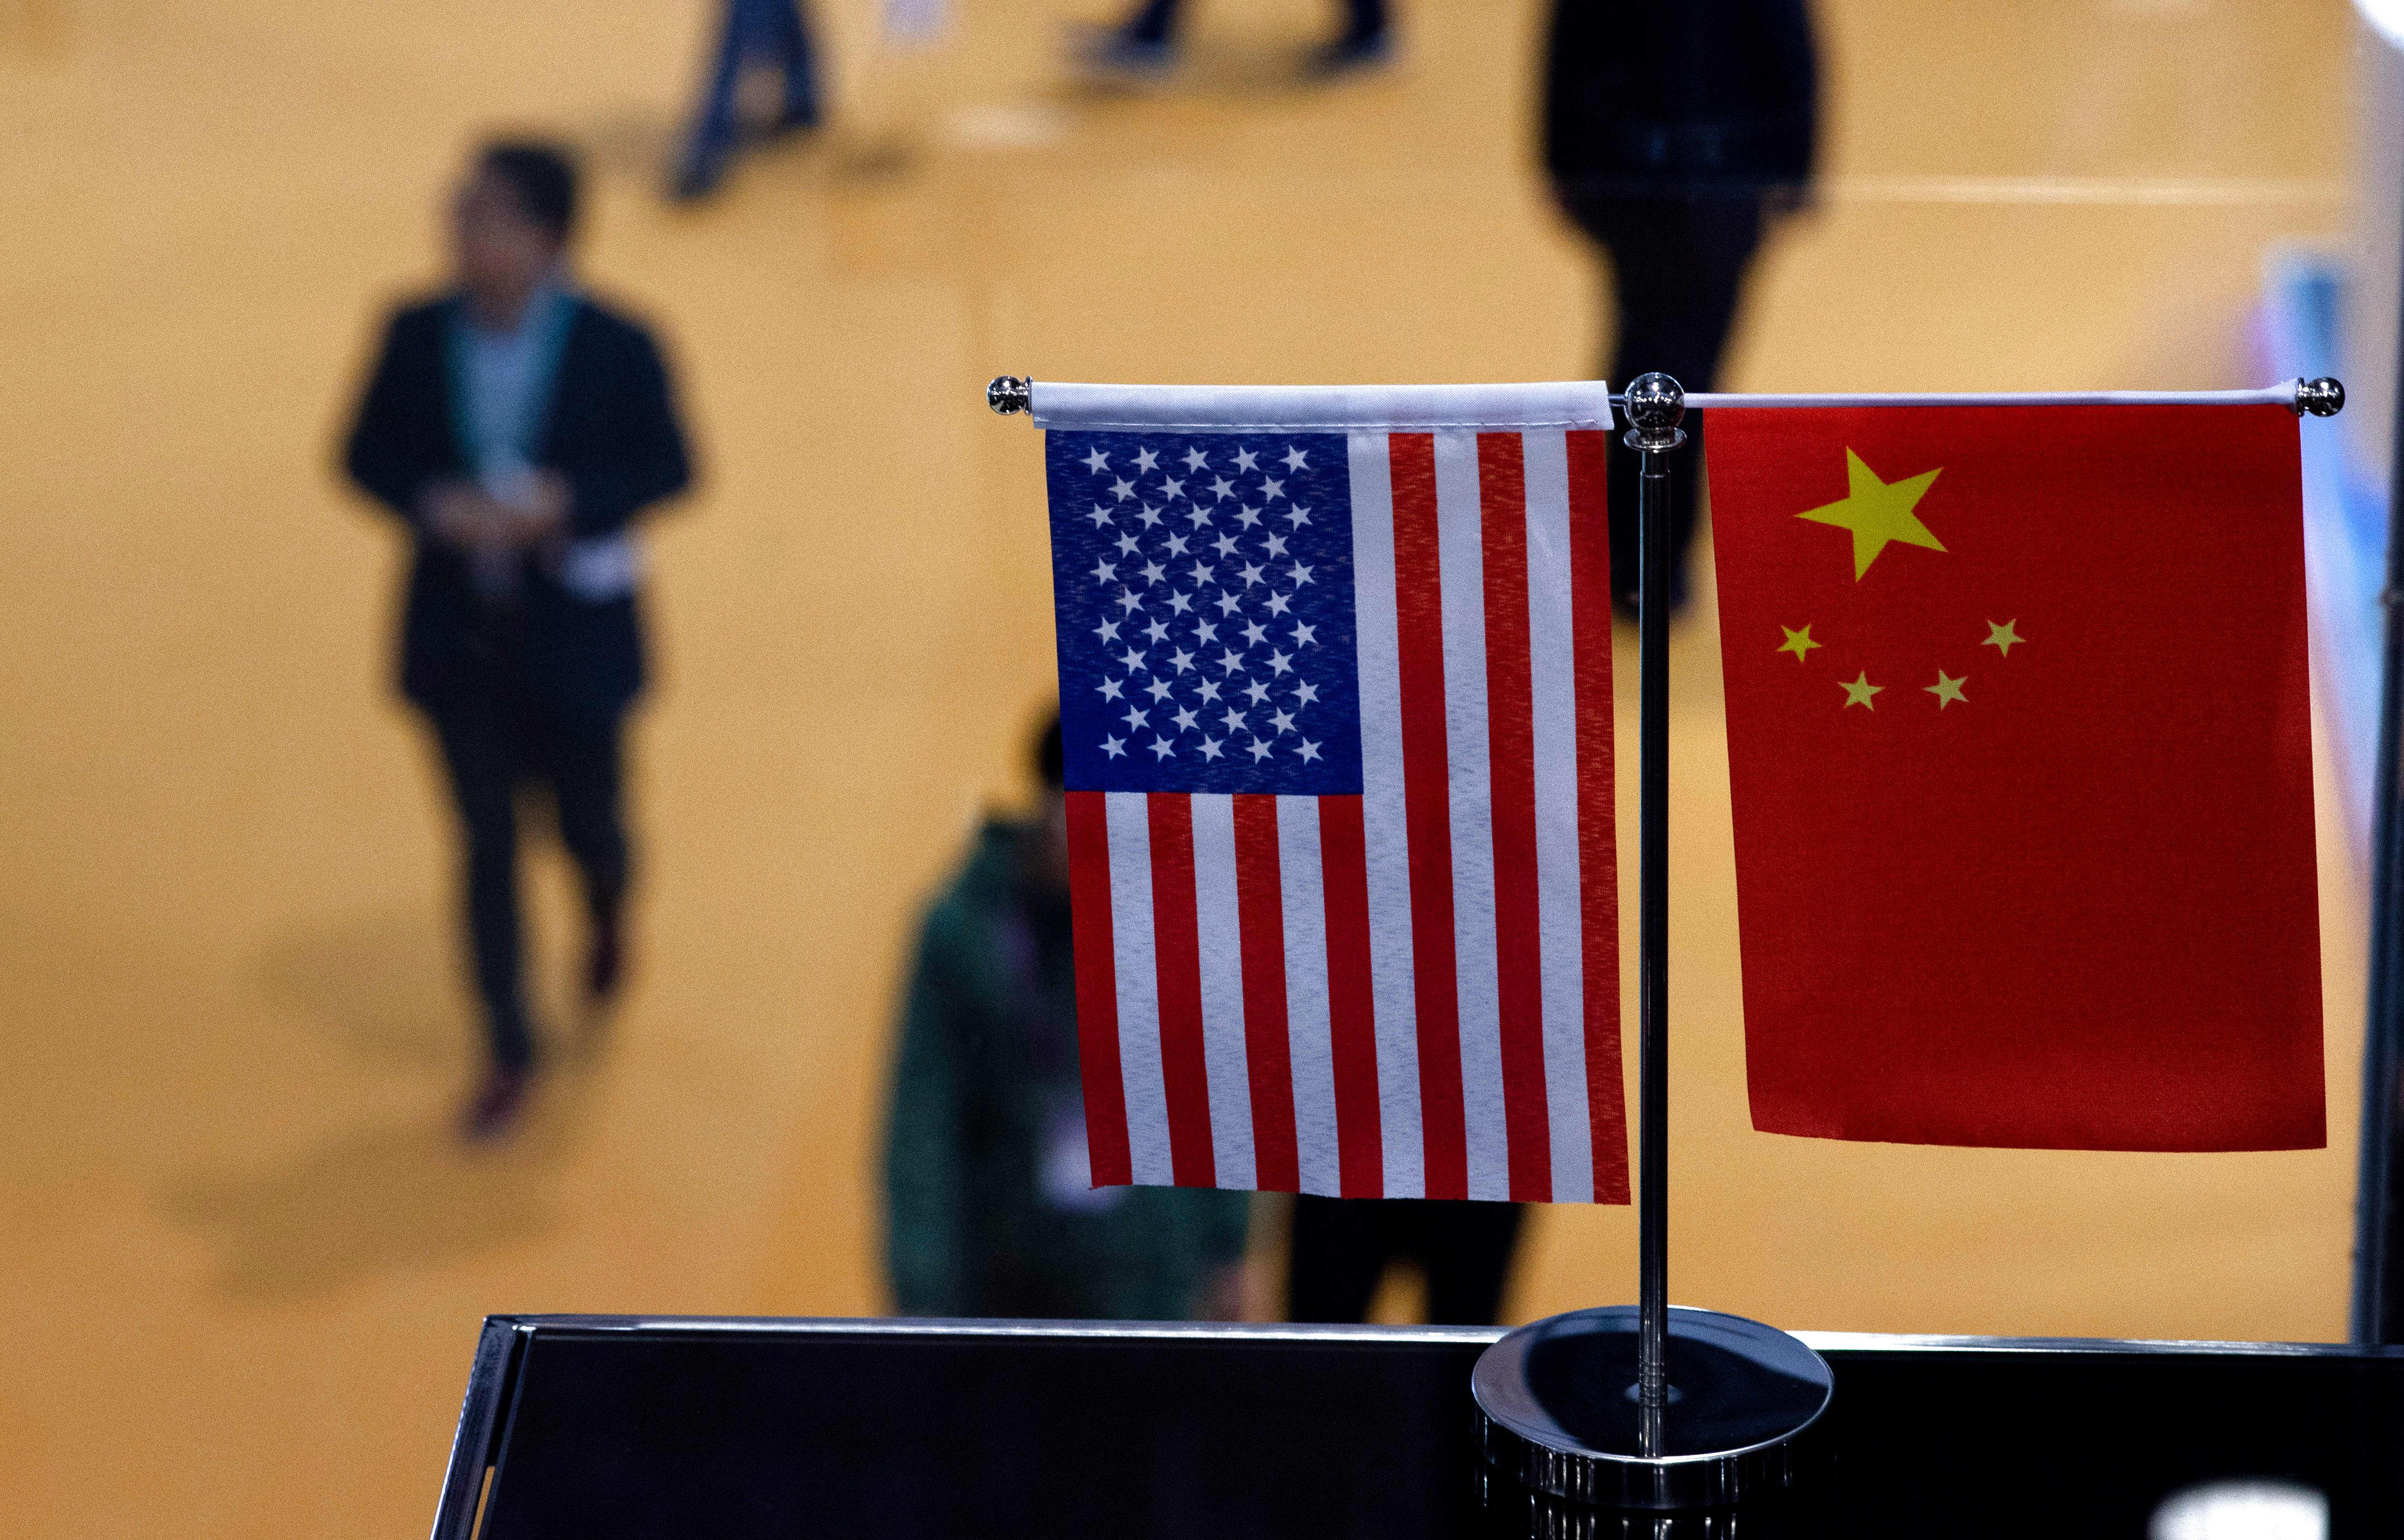 China is the 'most serious threat' to the United States, says former security advisor to Obama